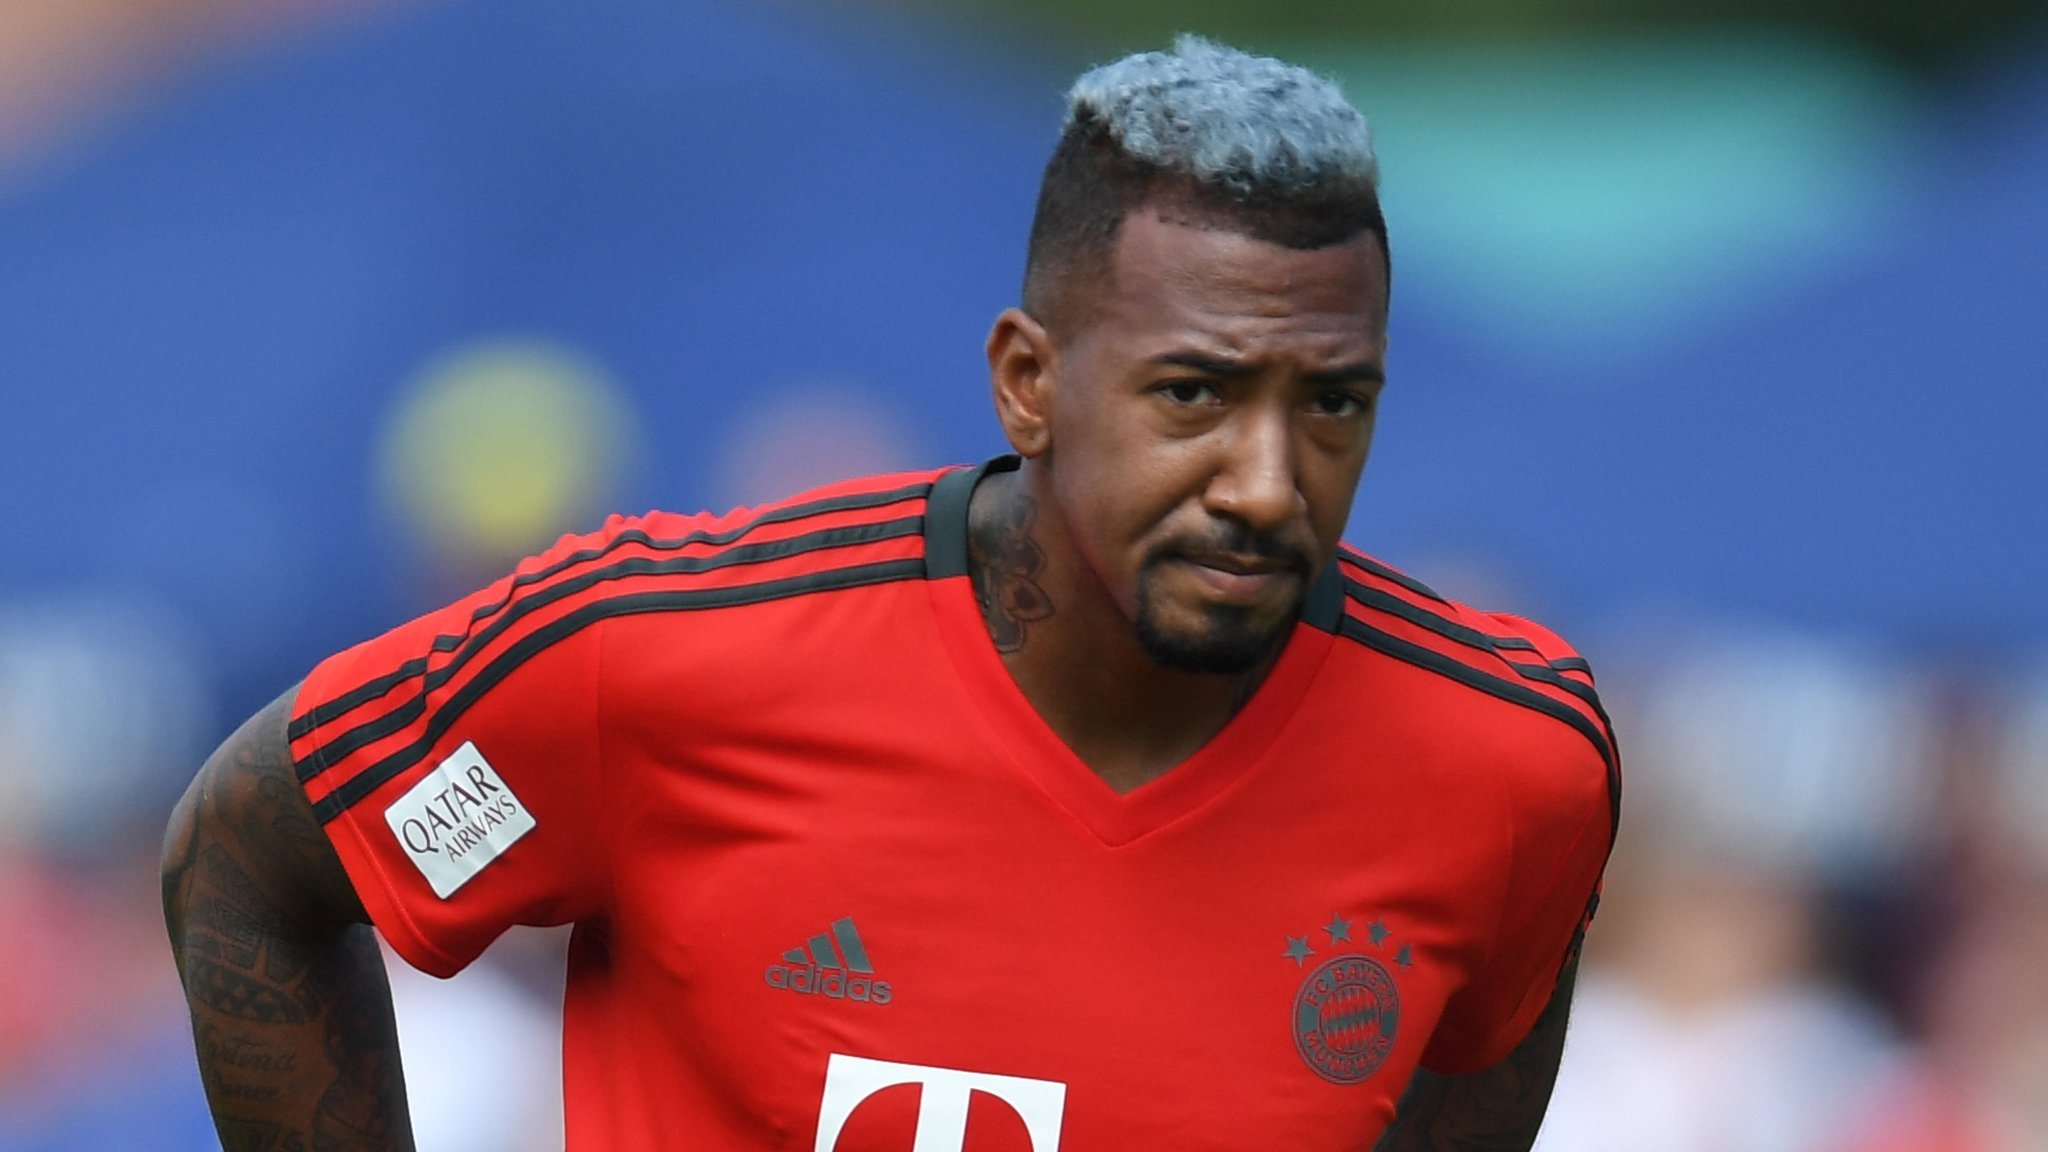 Germany defender Boateng '50-50' to leave Bayern Munich